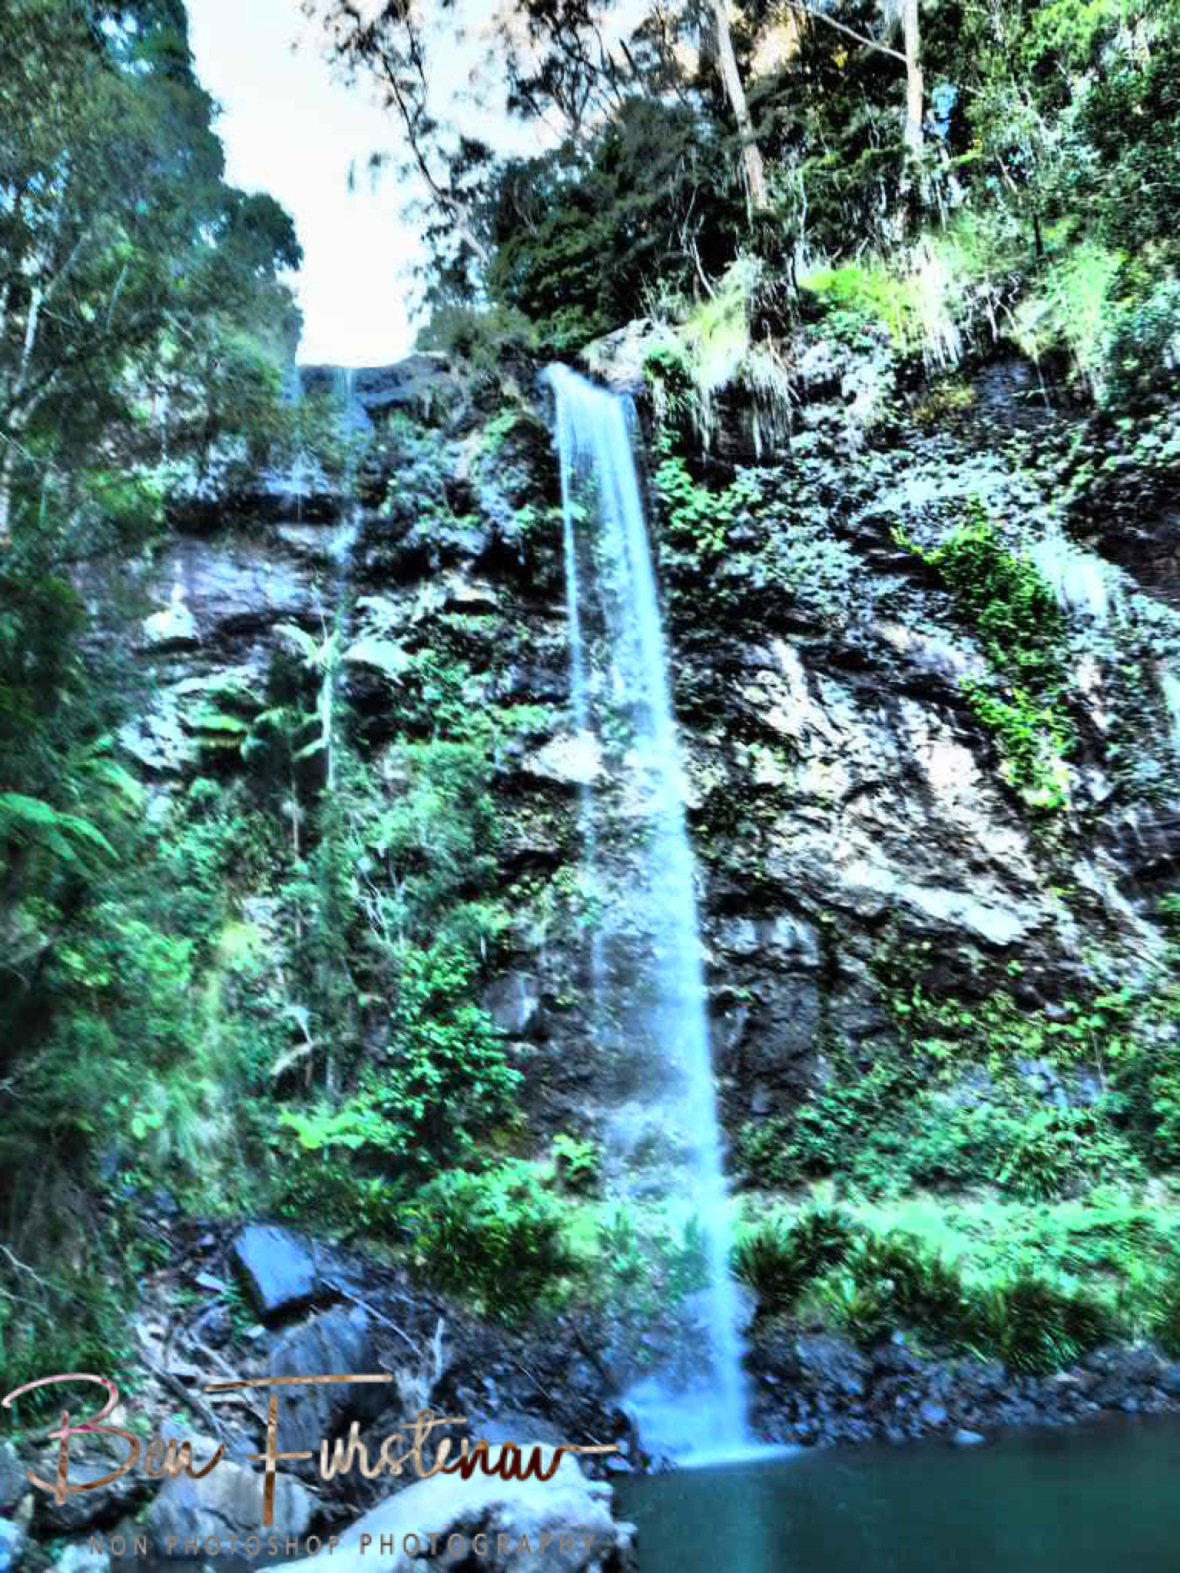 Twin Falls is just a short walk from the car park at Springbrook National Park, Queensland, Australia